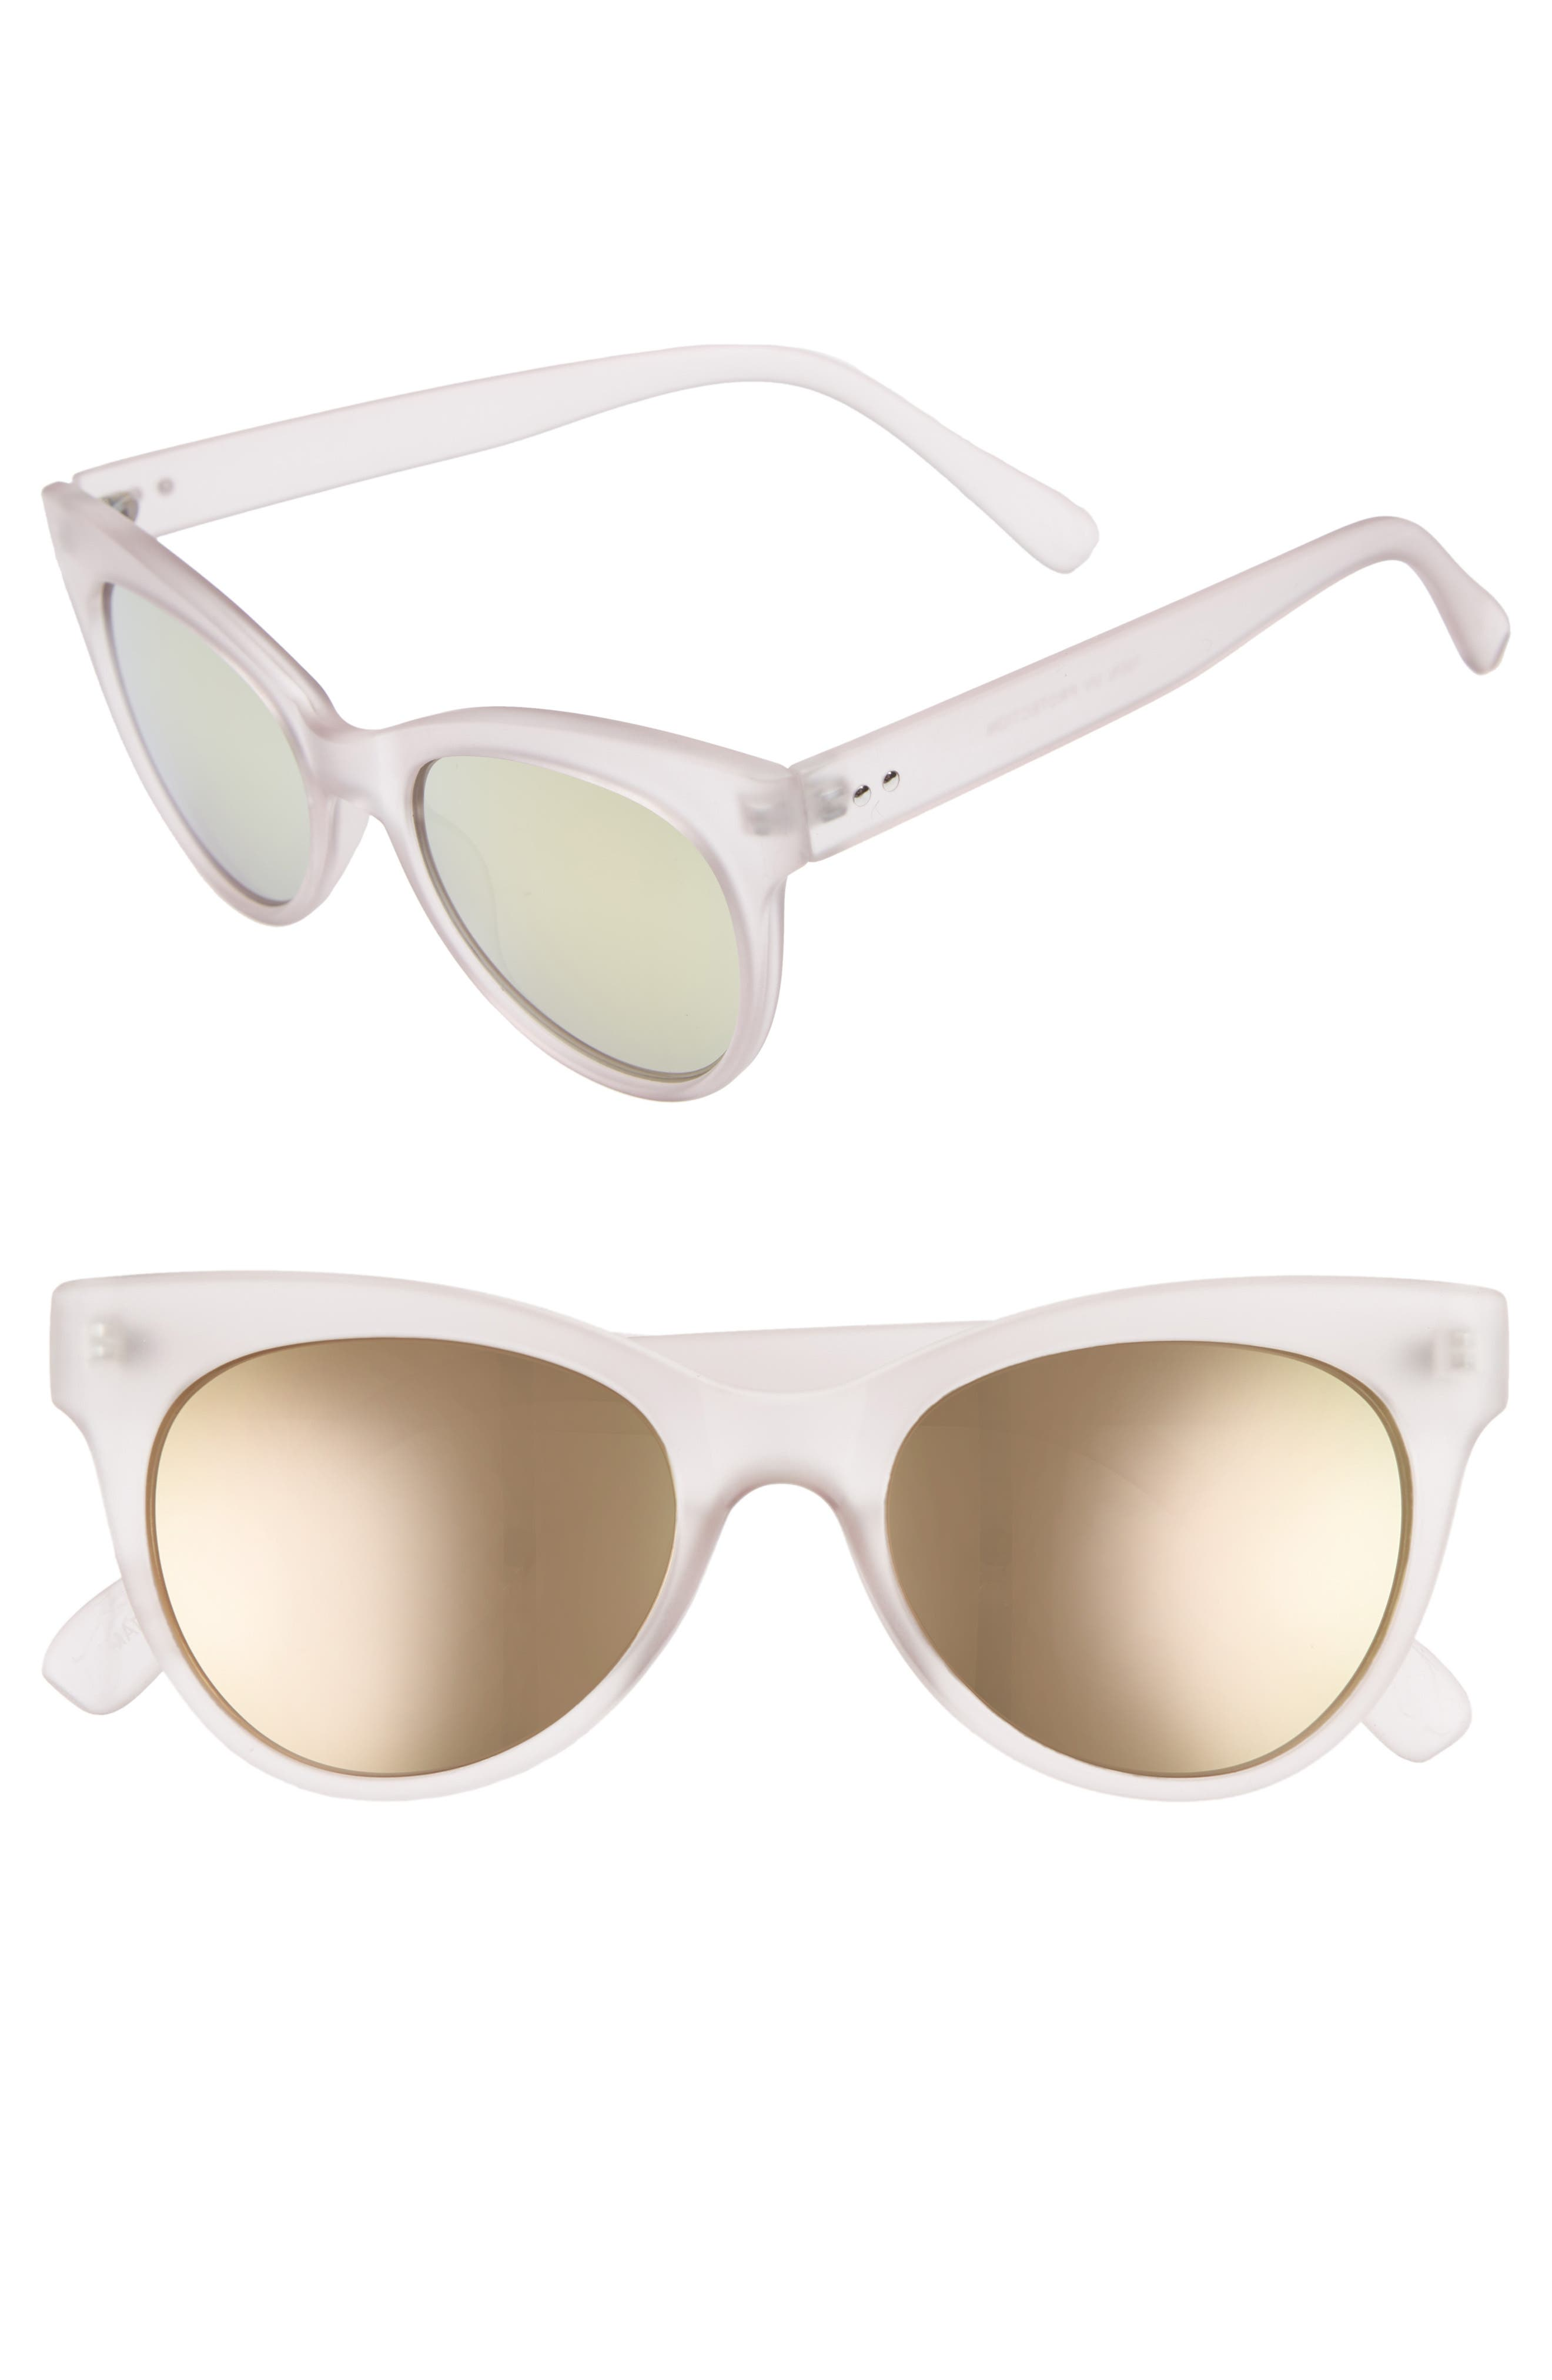 56mm Cat Eye Sunglasses,                         Main,                         color, Milky Pink/ Pink